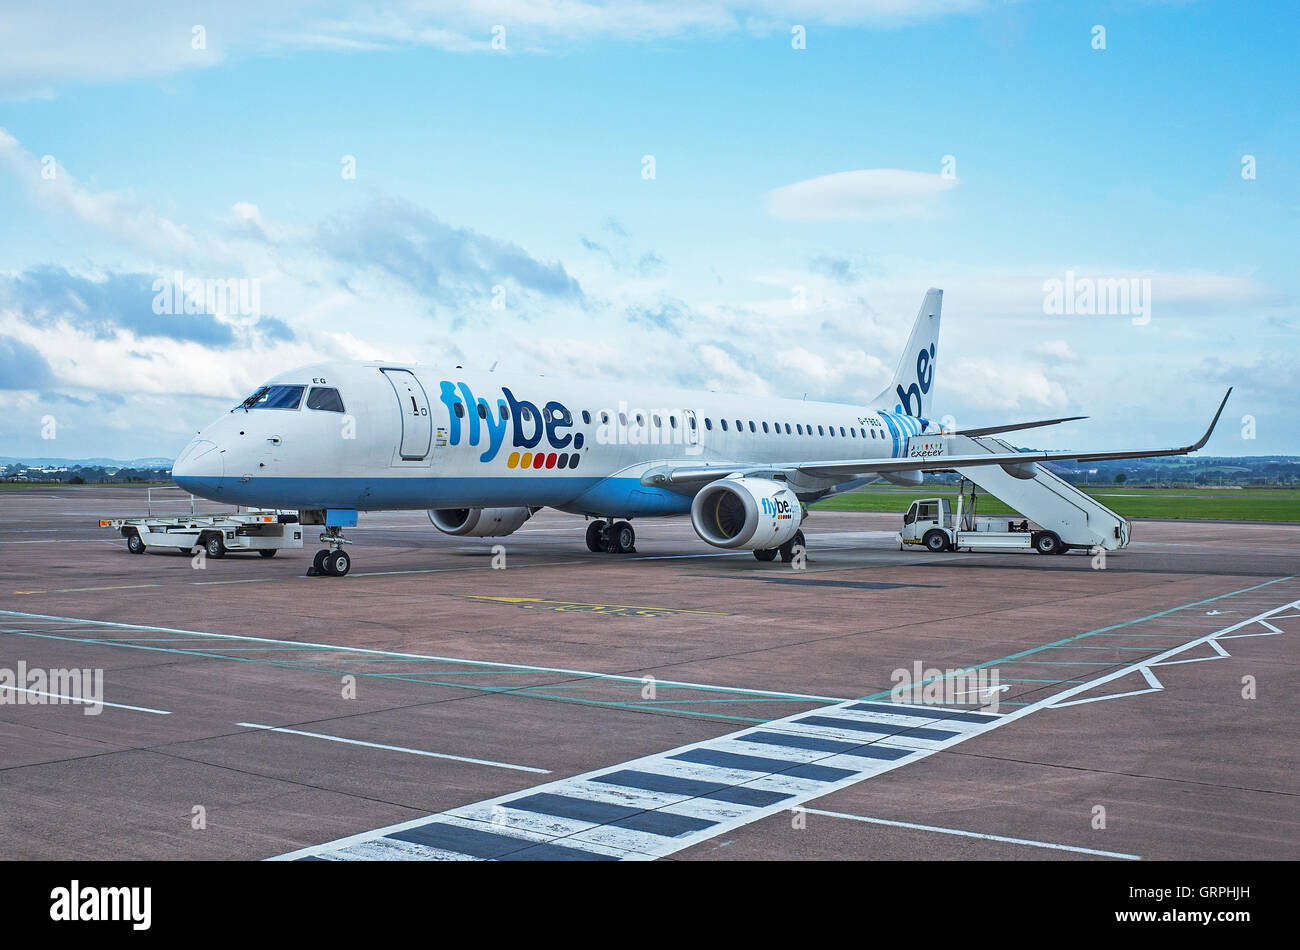 A Flybe aircraft on the tarmac at Exeter airport, Devon, England, Uk - Stock Image